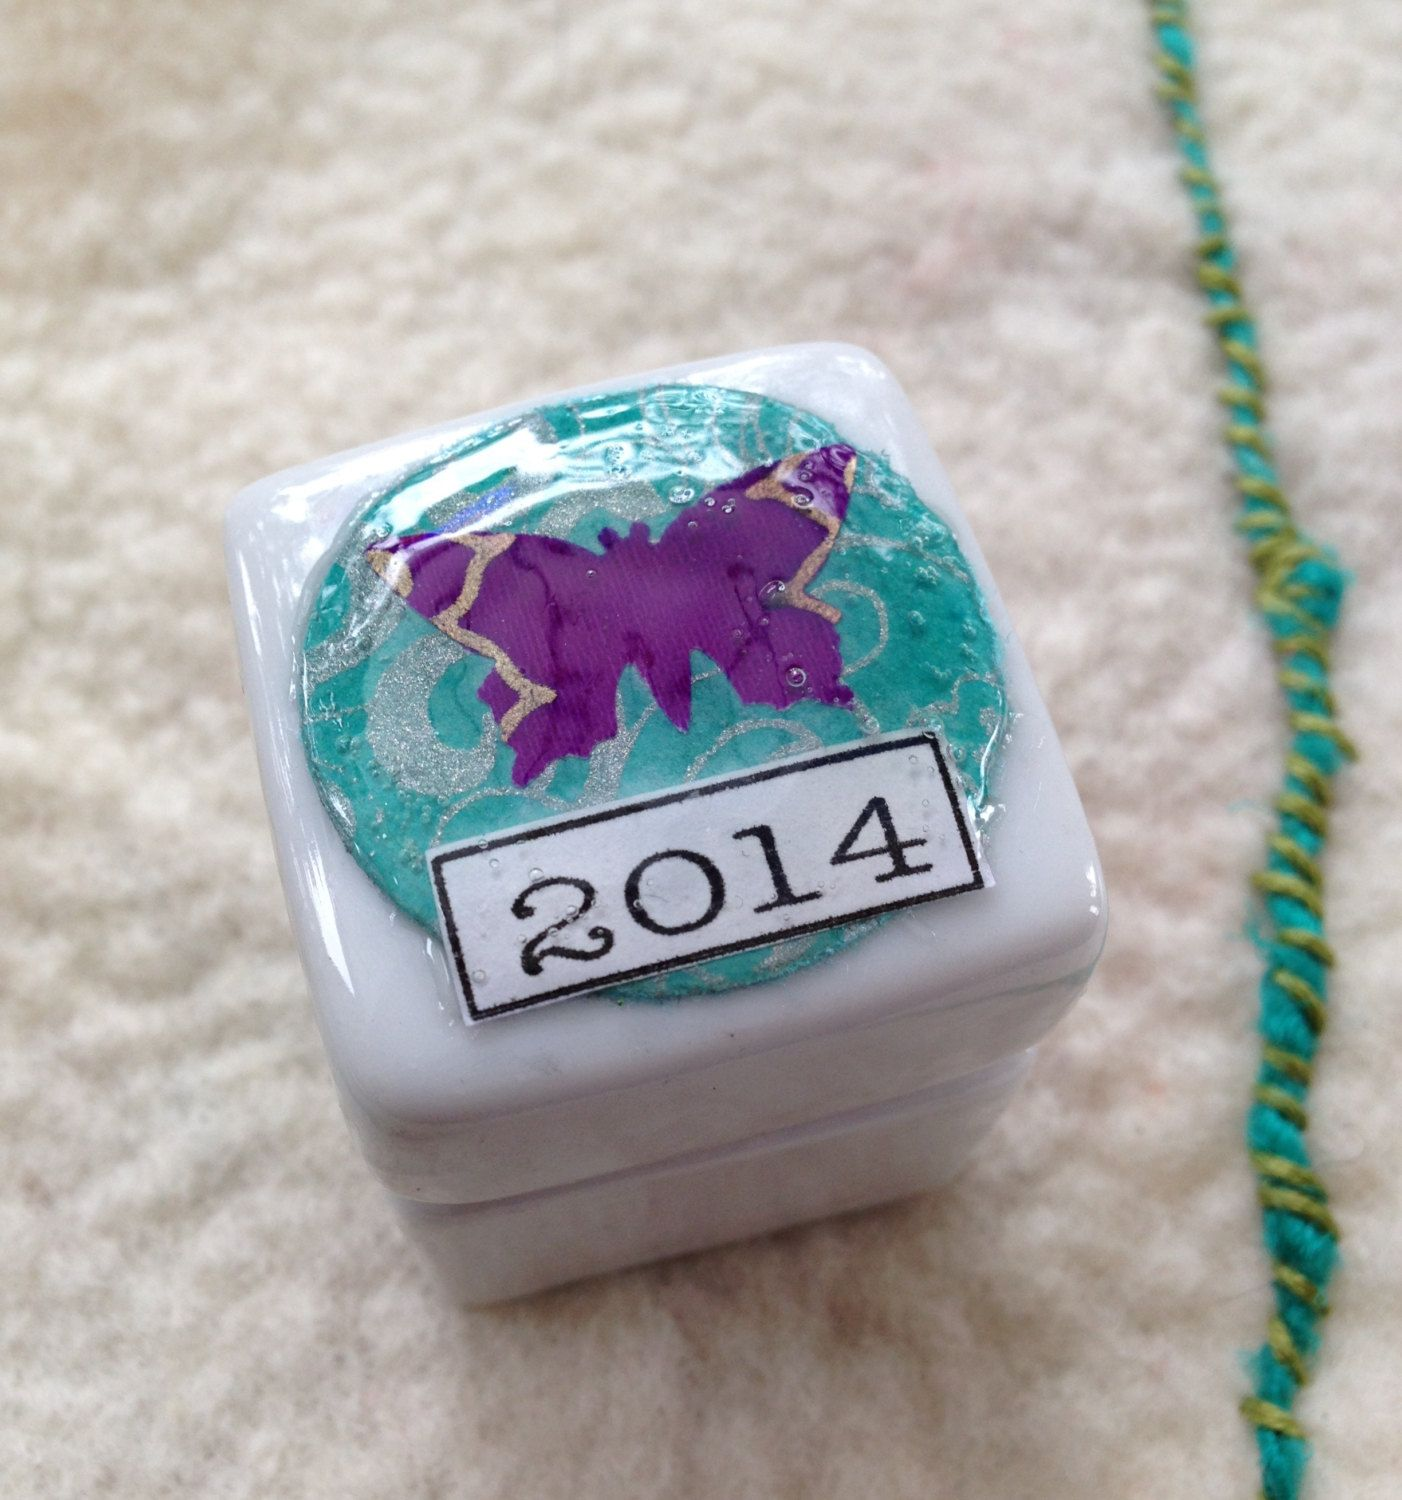 2014+Word+of+the+Year+Rock+in+A+Box+by+QueenofArtsStudio+on+Etsy,+$10.00